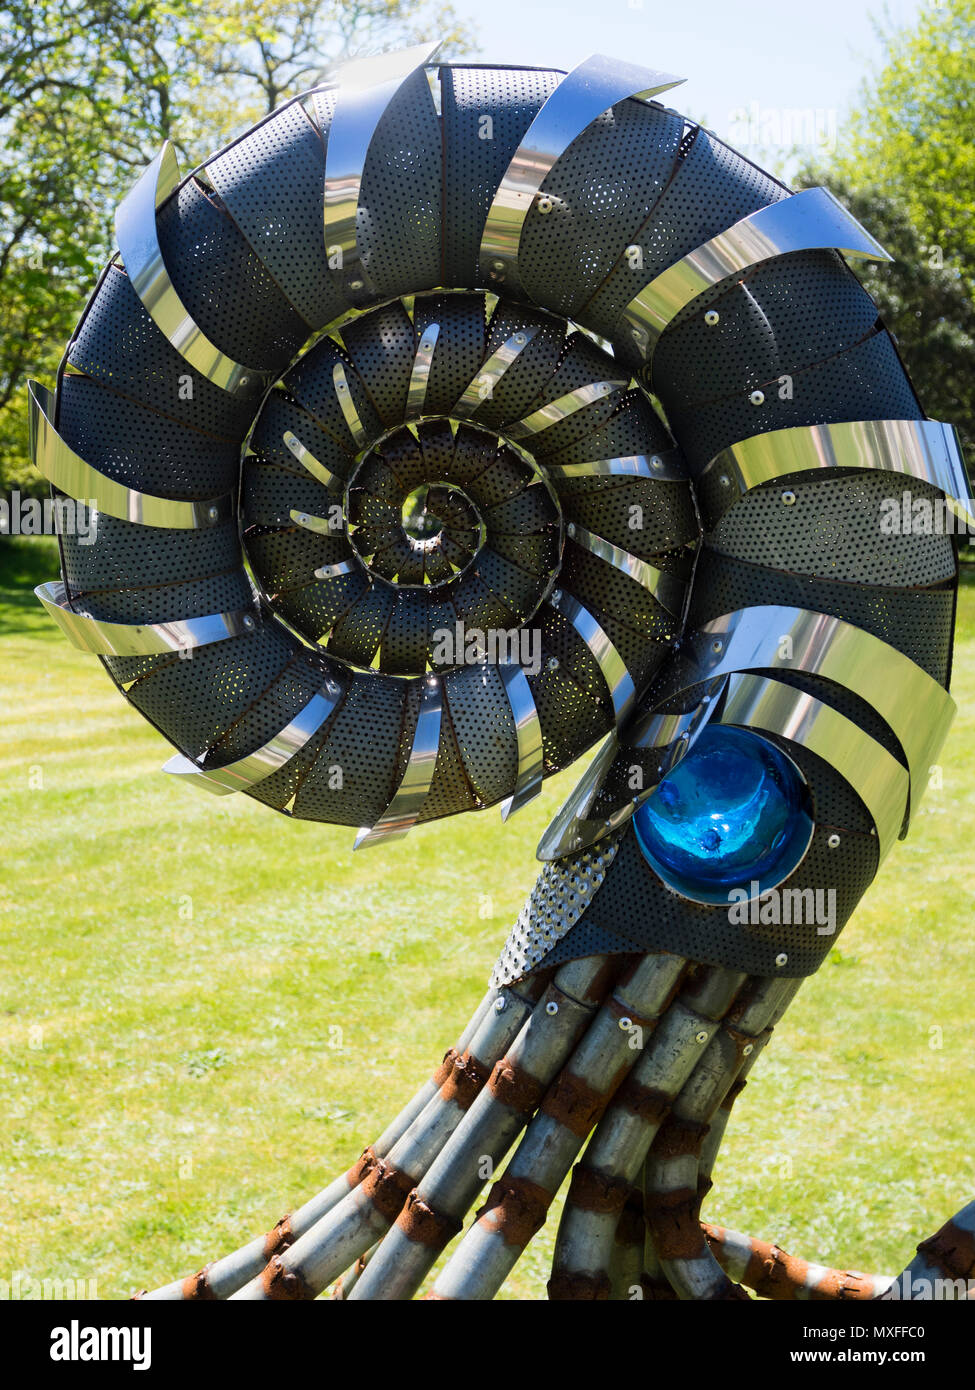 coil-detail-of-the-walking-ammonite-sculpture-by-glenn-martin-exhibited-on-the-lawn-at-delamore-arts-exhibition-devon-uk-2018-MXFFC0.jpg